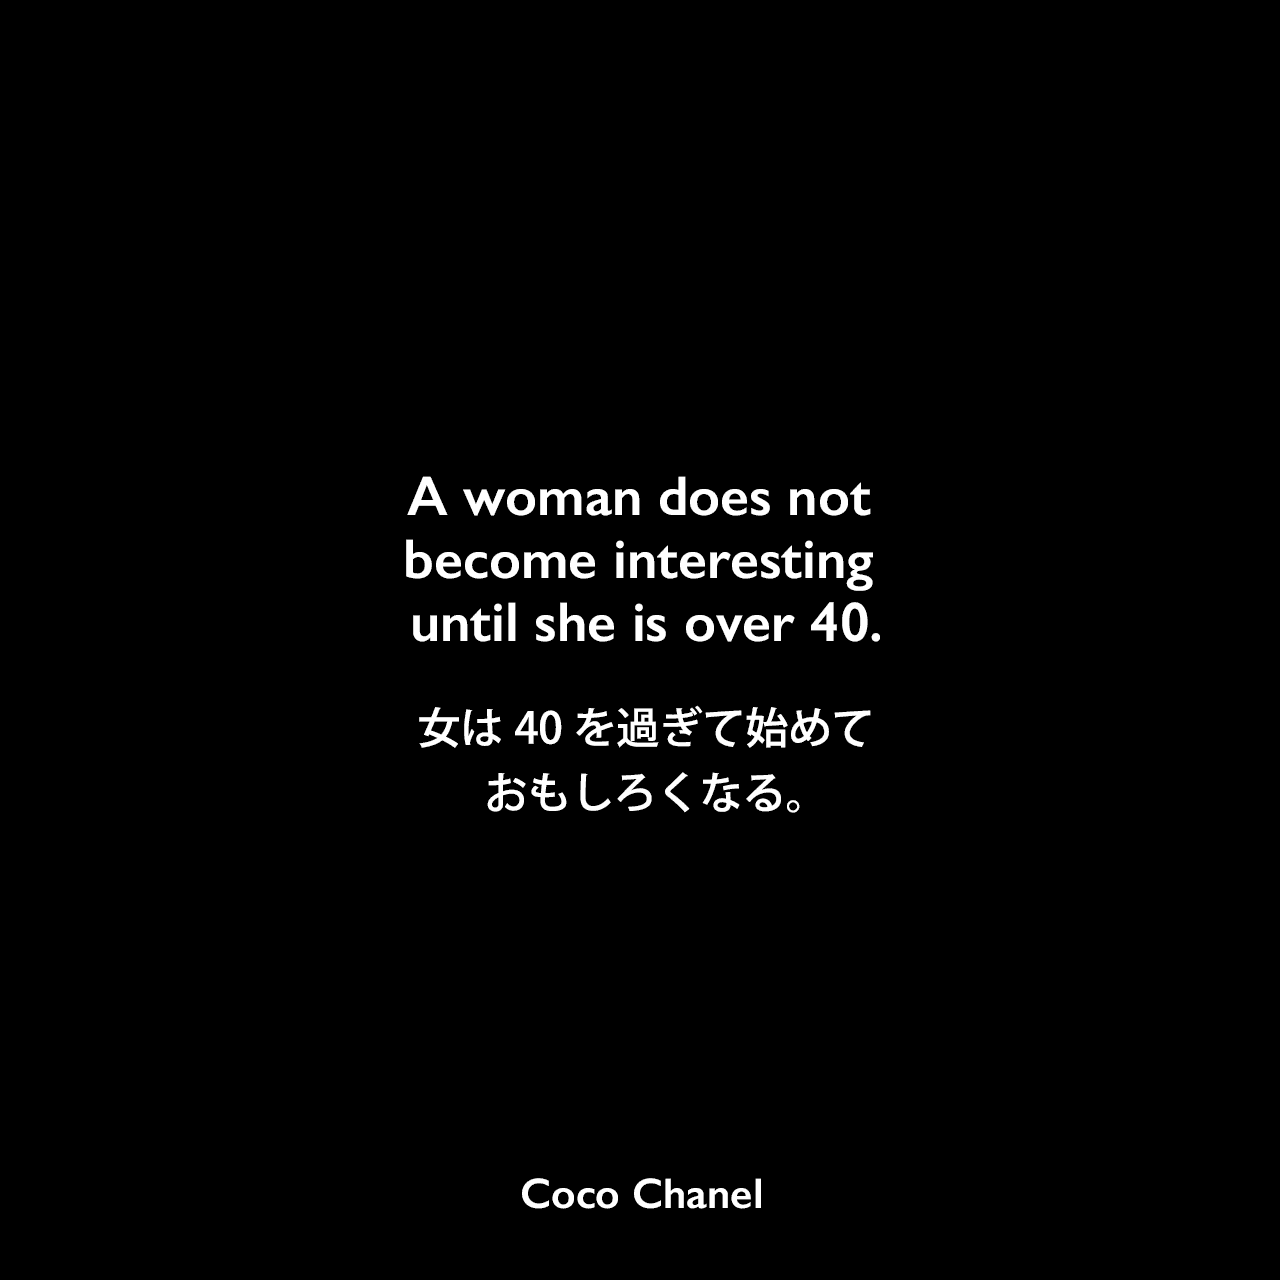 A woman does not become interesting until she is over 40.女は40を過ぎて始めておもしろくなる。Coco Chanel